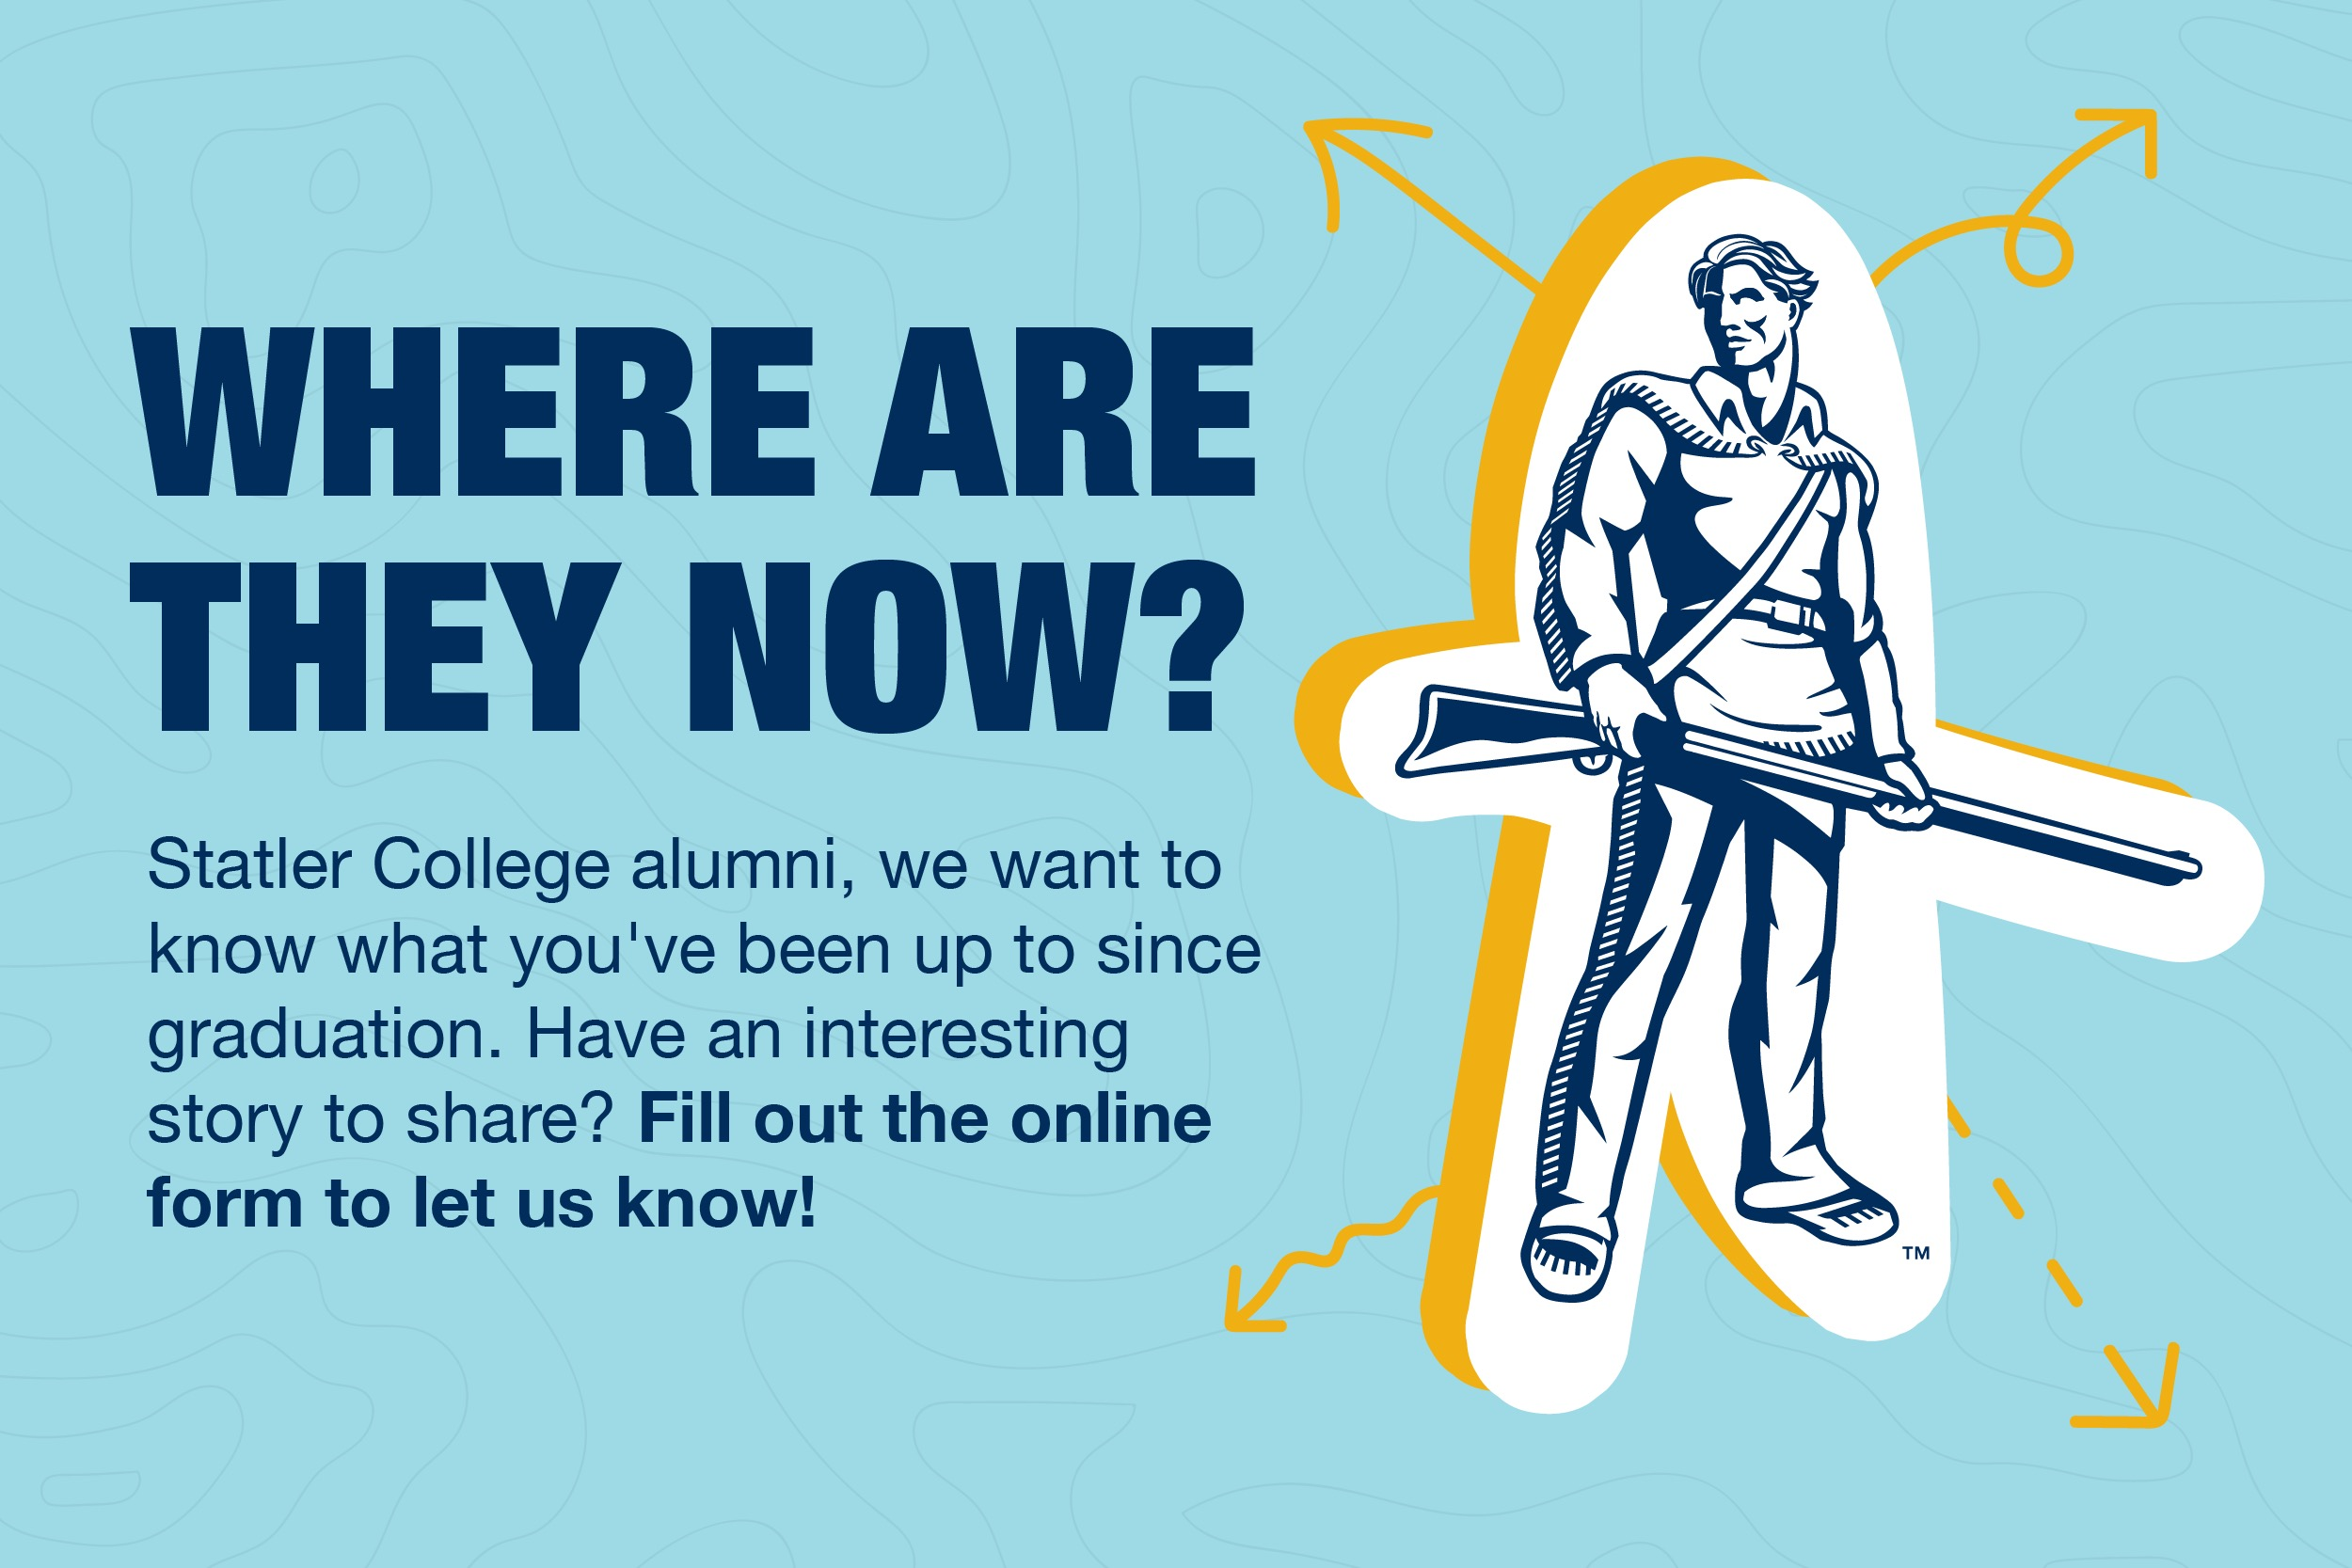 Where are they now? Statler College alumni, we want to know what you've been up to since graduation. Have an interesting story to share? Fill out the online form to let us know!